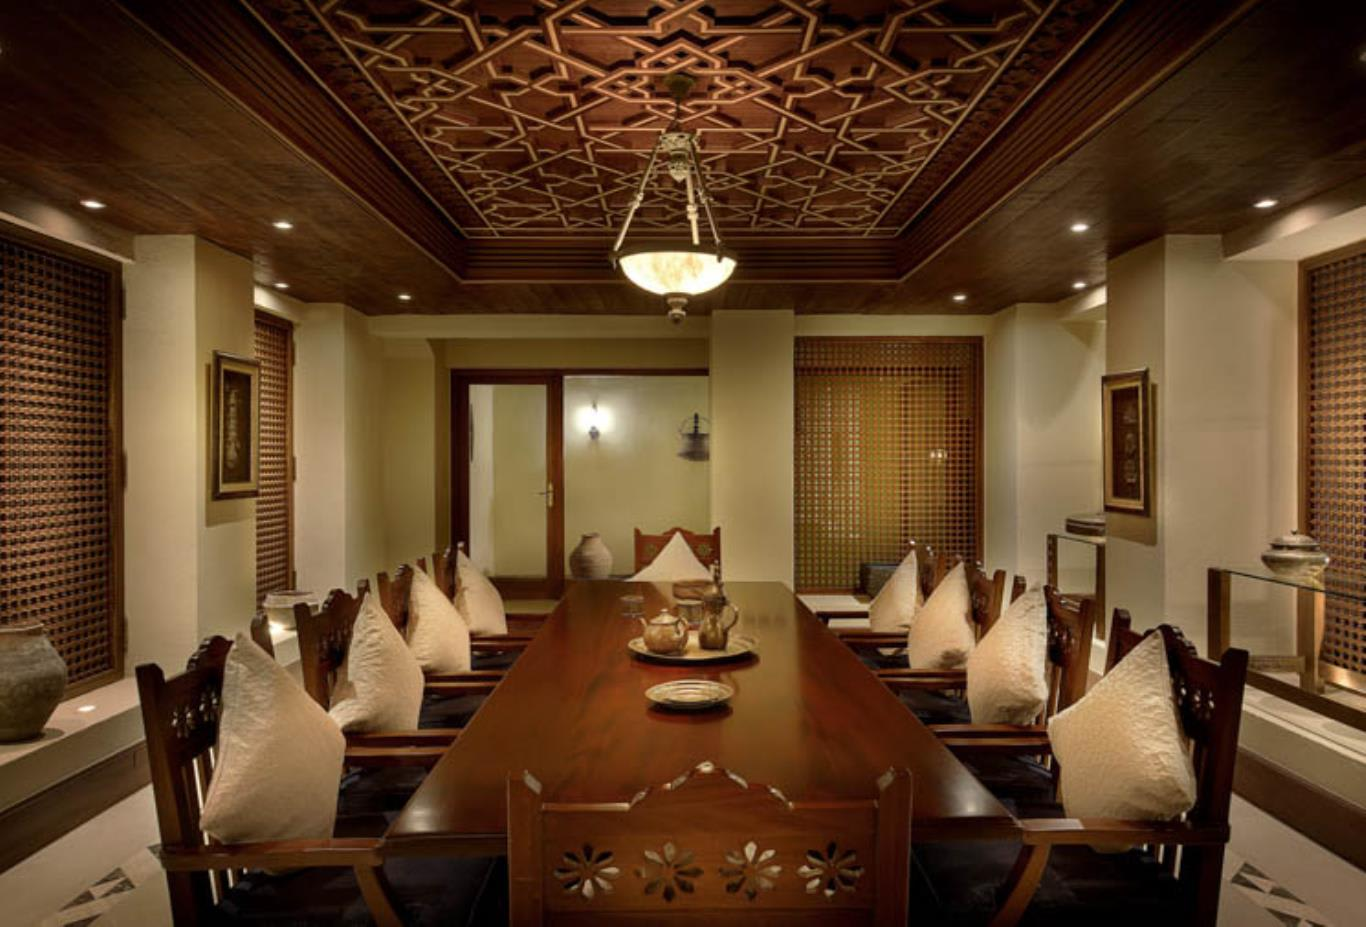 Presidential Suite dining room interior